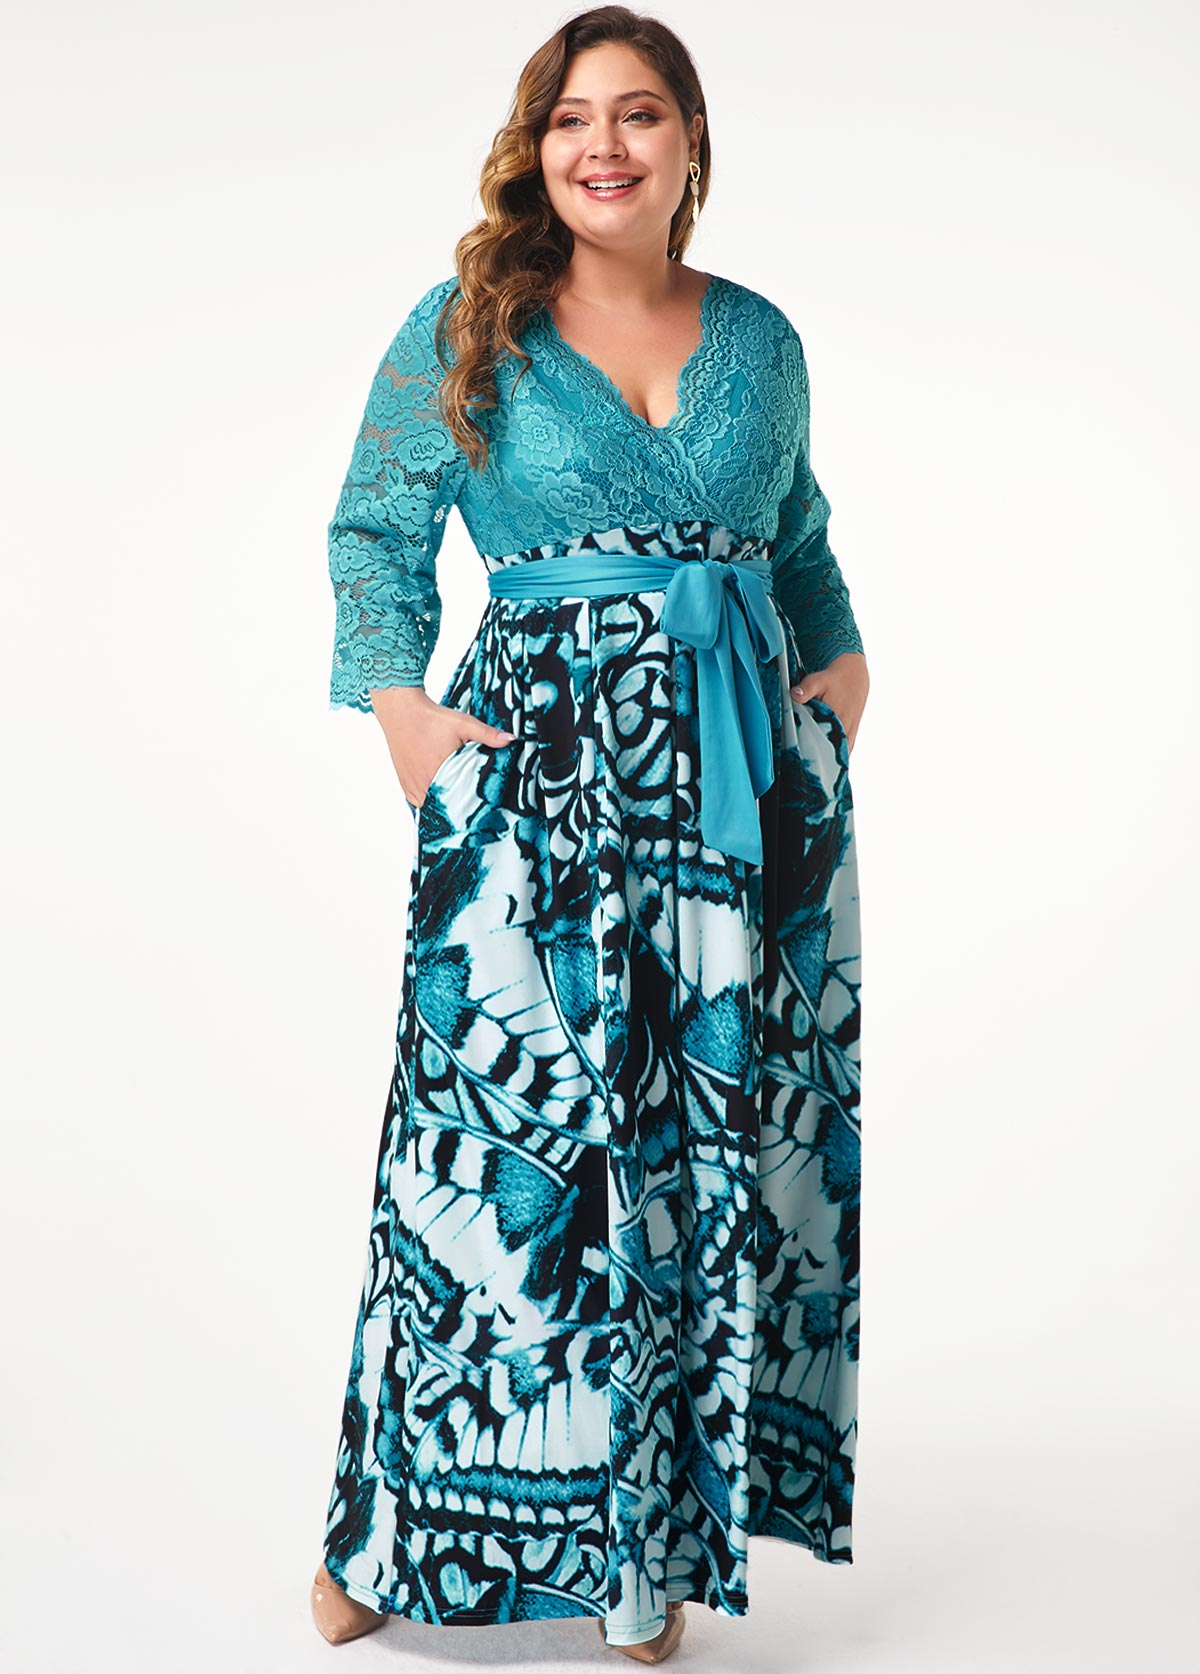 Belted Lace Panel Printed Plus Size Maxi Dress